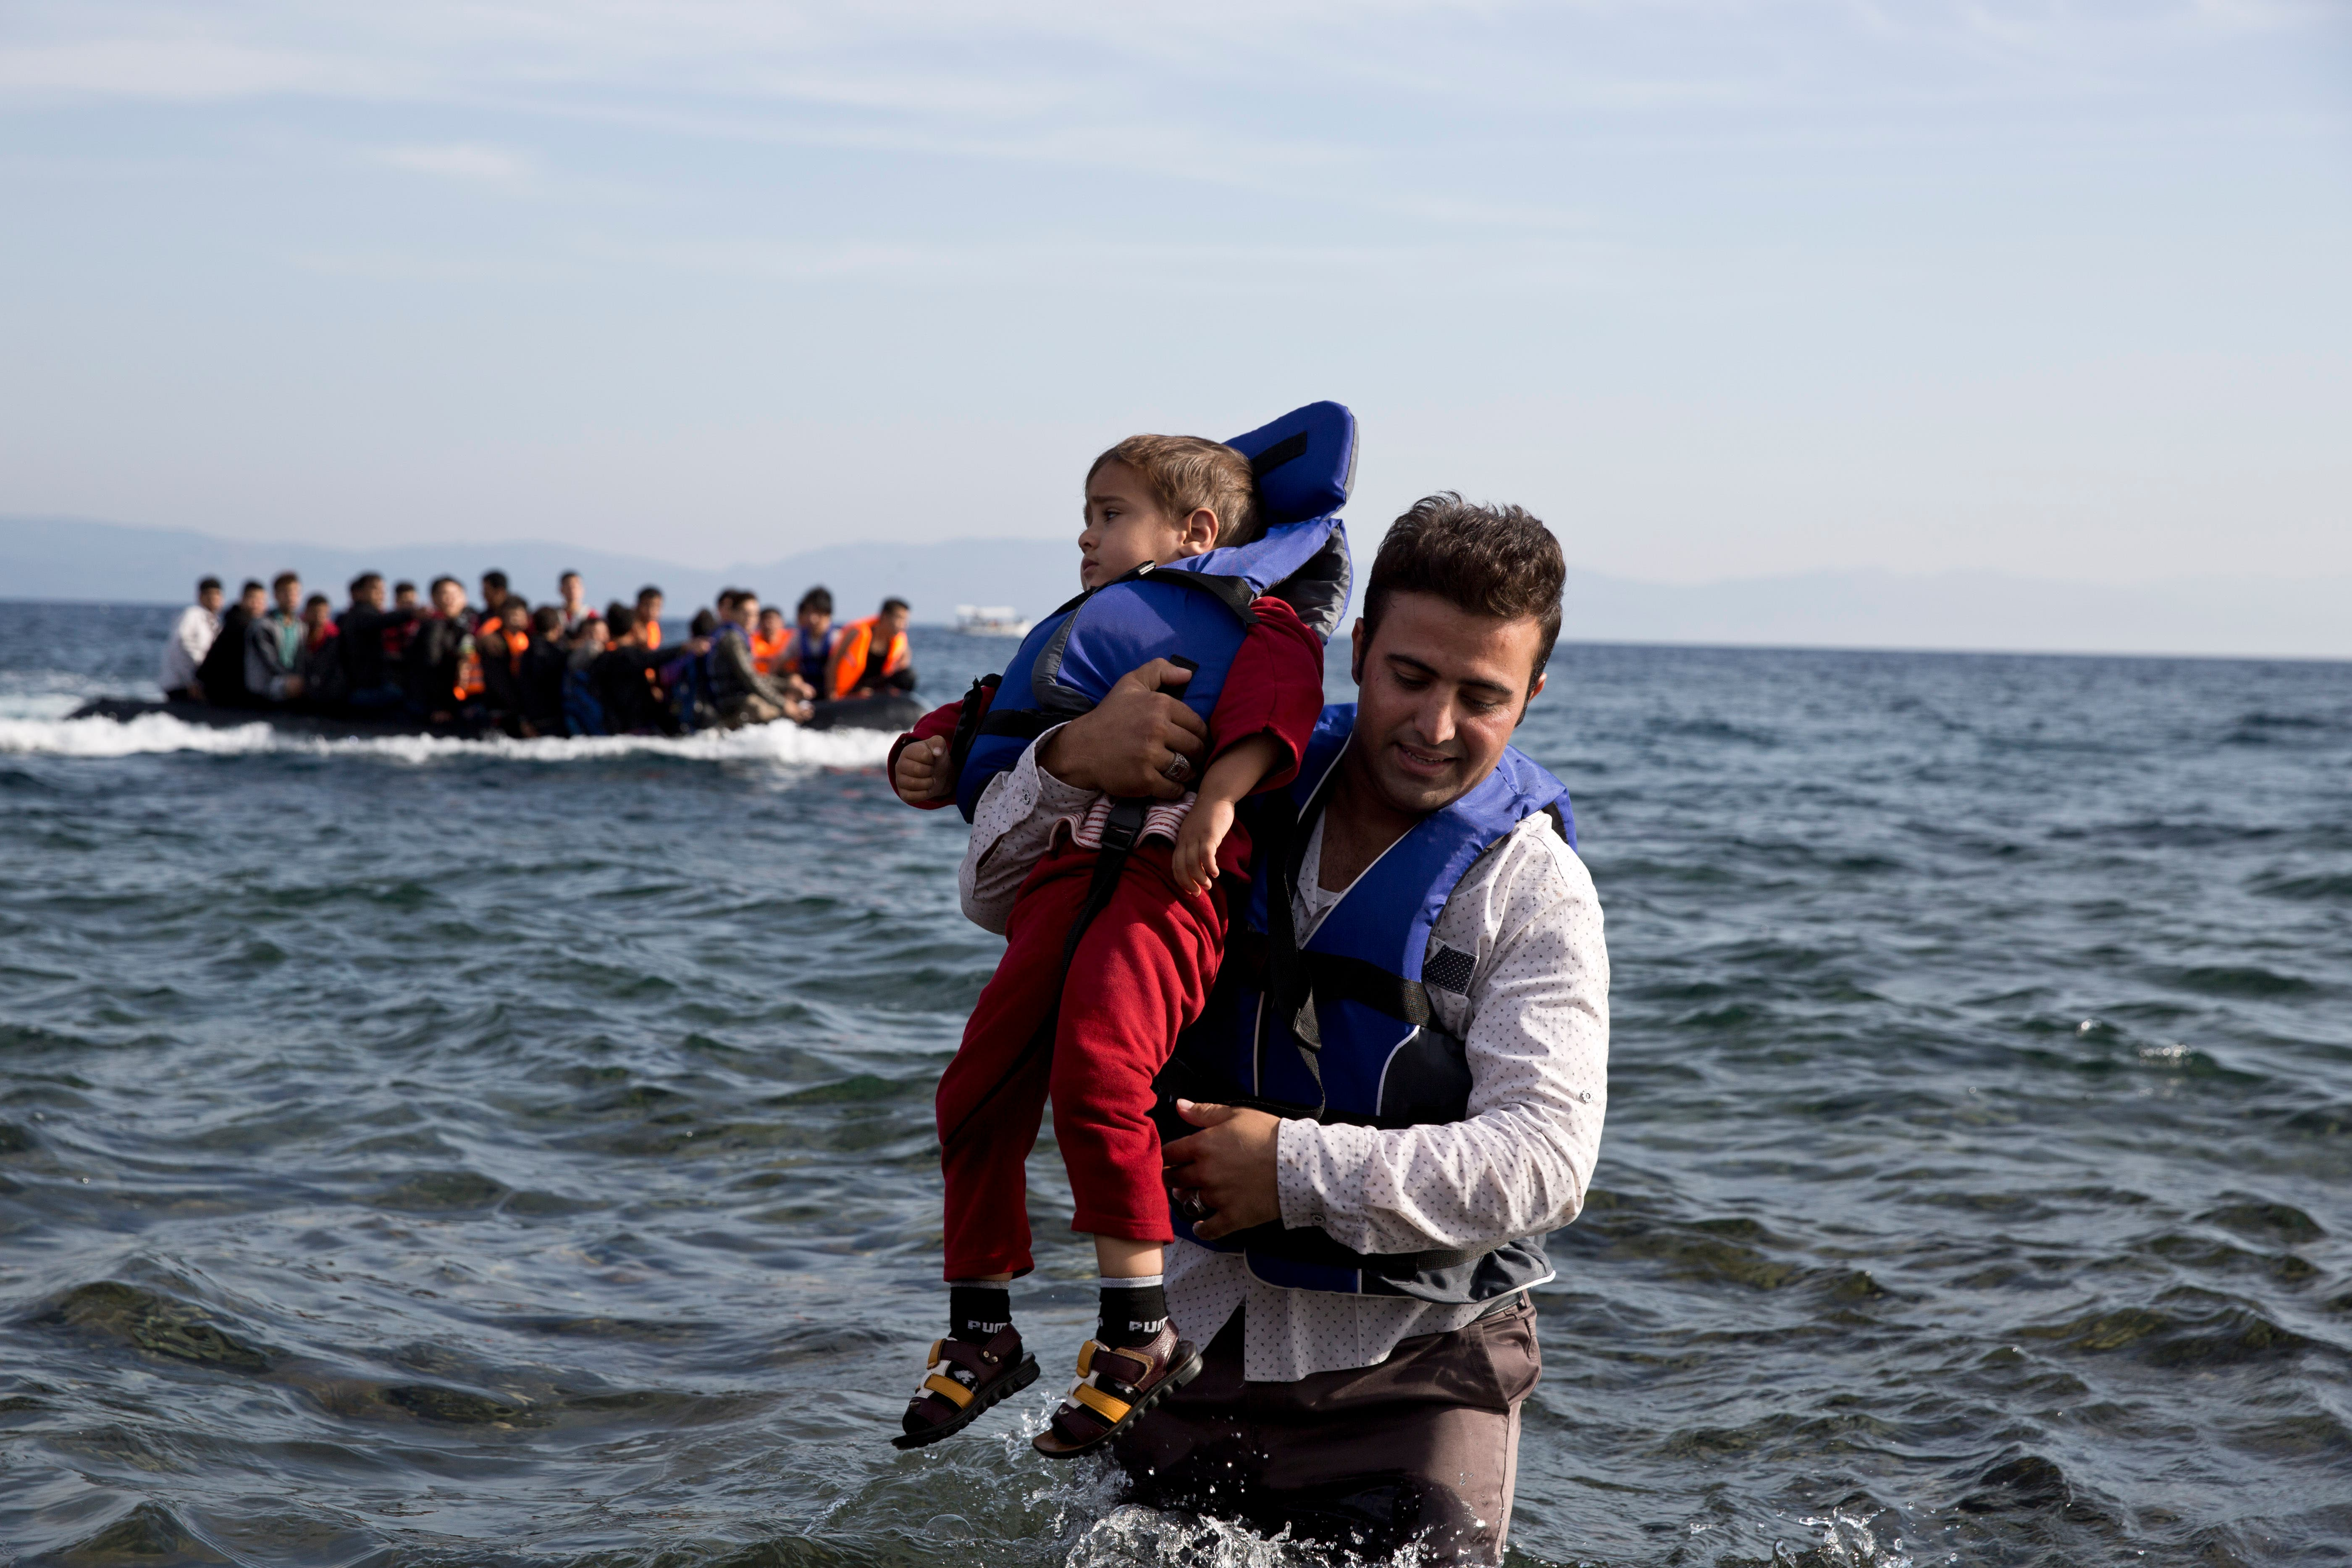 A Syrian refugee carries his child after they arrived from Turkey to the shores of the Greek island of Lesbos, on an inflatable dinghy, with another boat in the background, Saturday Sept. 26, 2015. More than 260,000 asylum-seekers have arrived in Greece so far this year, most reaching the country's eastern islands on flimsy rafts or boats from the nearby Turkish coast. (AP Photo/Petros Giannakouris)